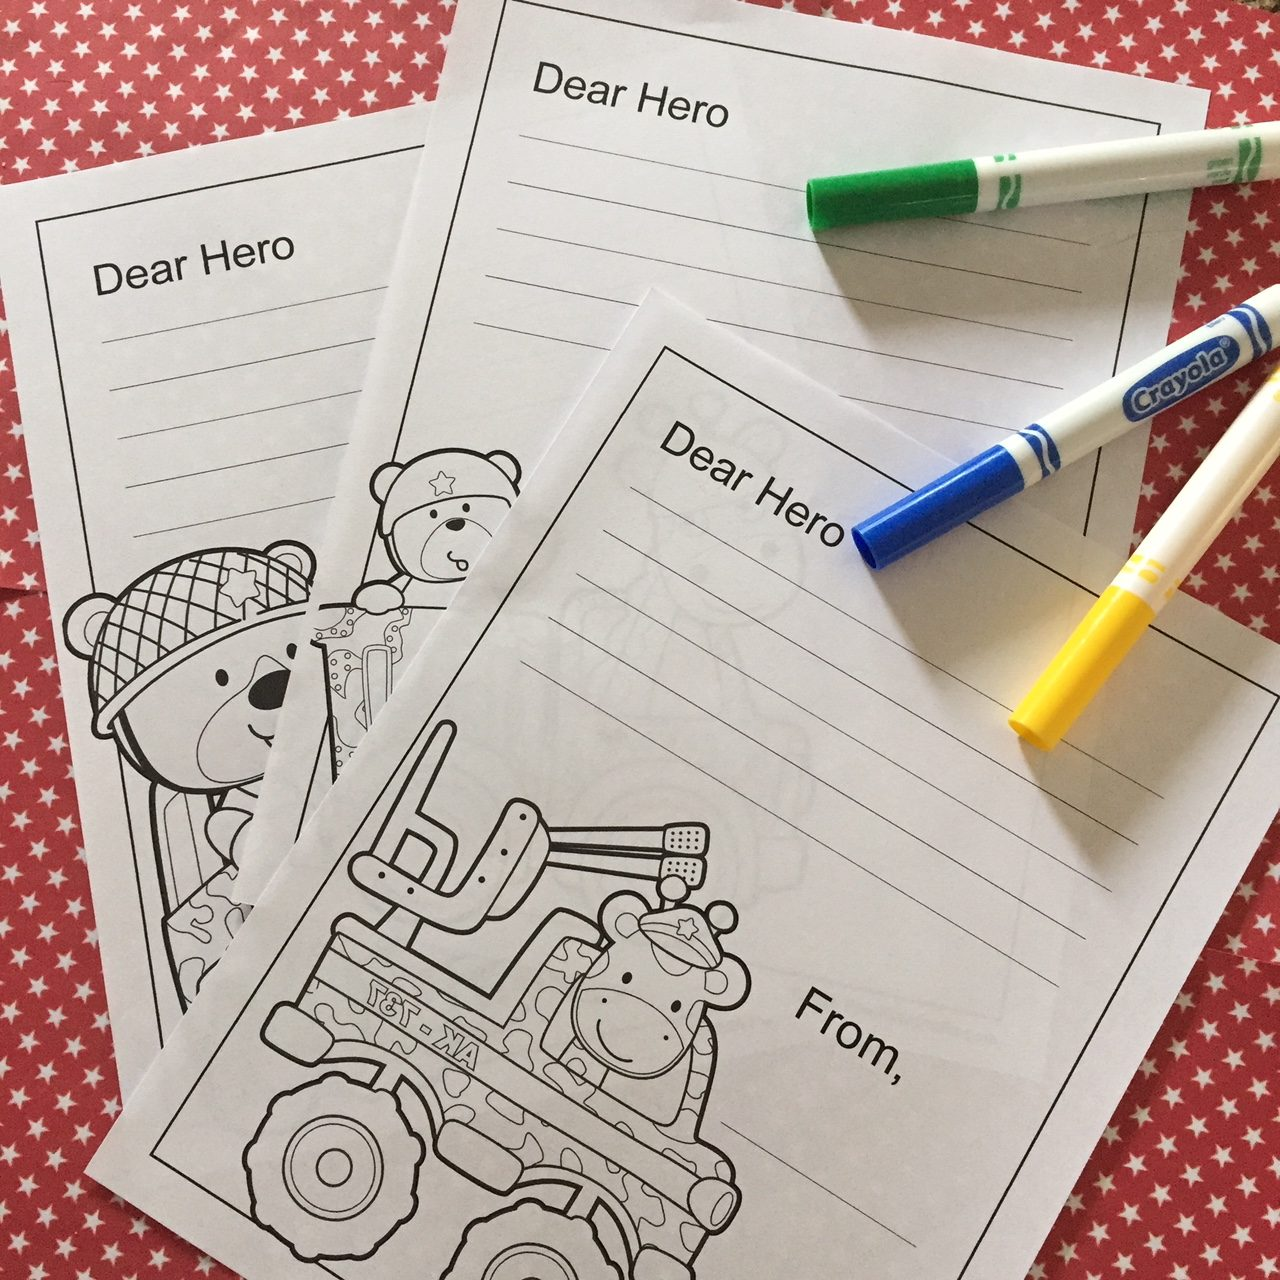 Notes to military personnel with coloring pictures.